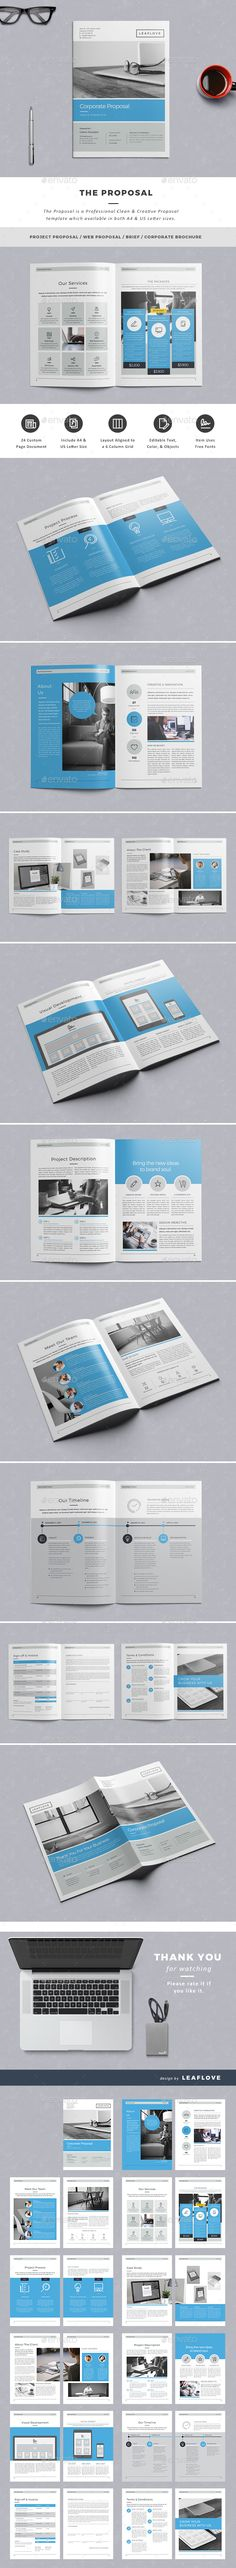 Proposal Proposals, Adobe indesign and Brochure template - microsoft word proposal template free download